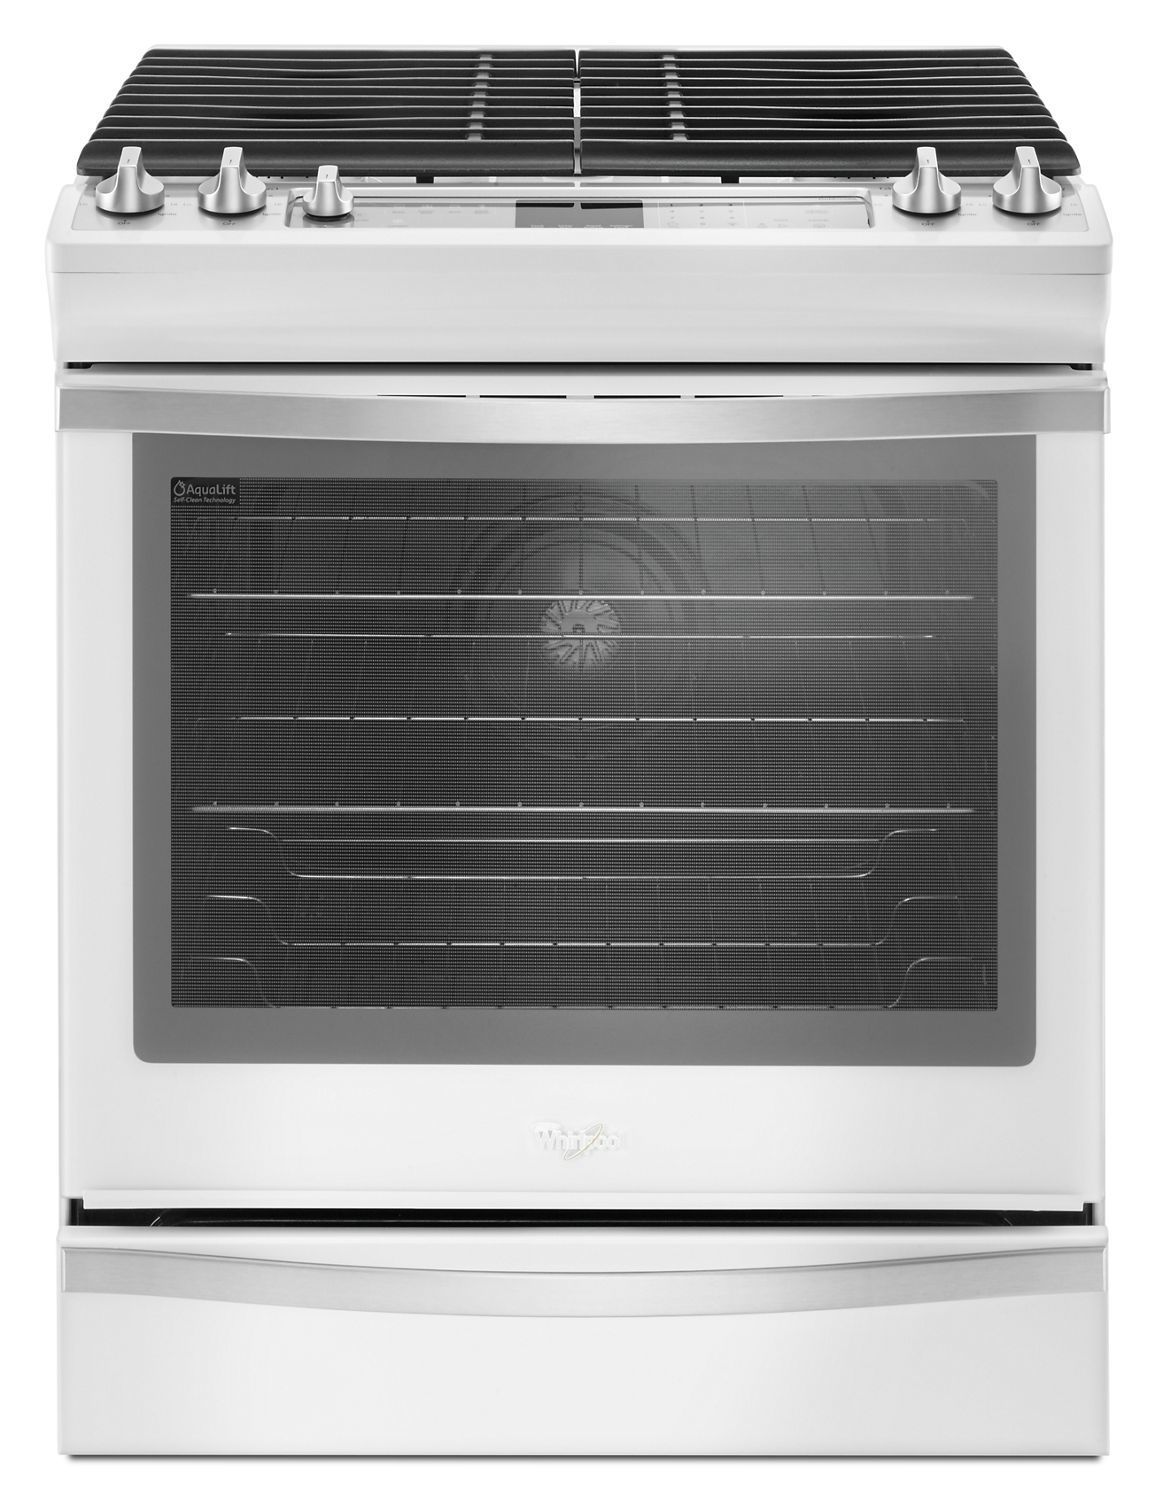 Weg745h0fh Whirlpool 5 8 Cu Ft Slide In Gas Range With Ez